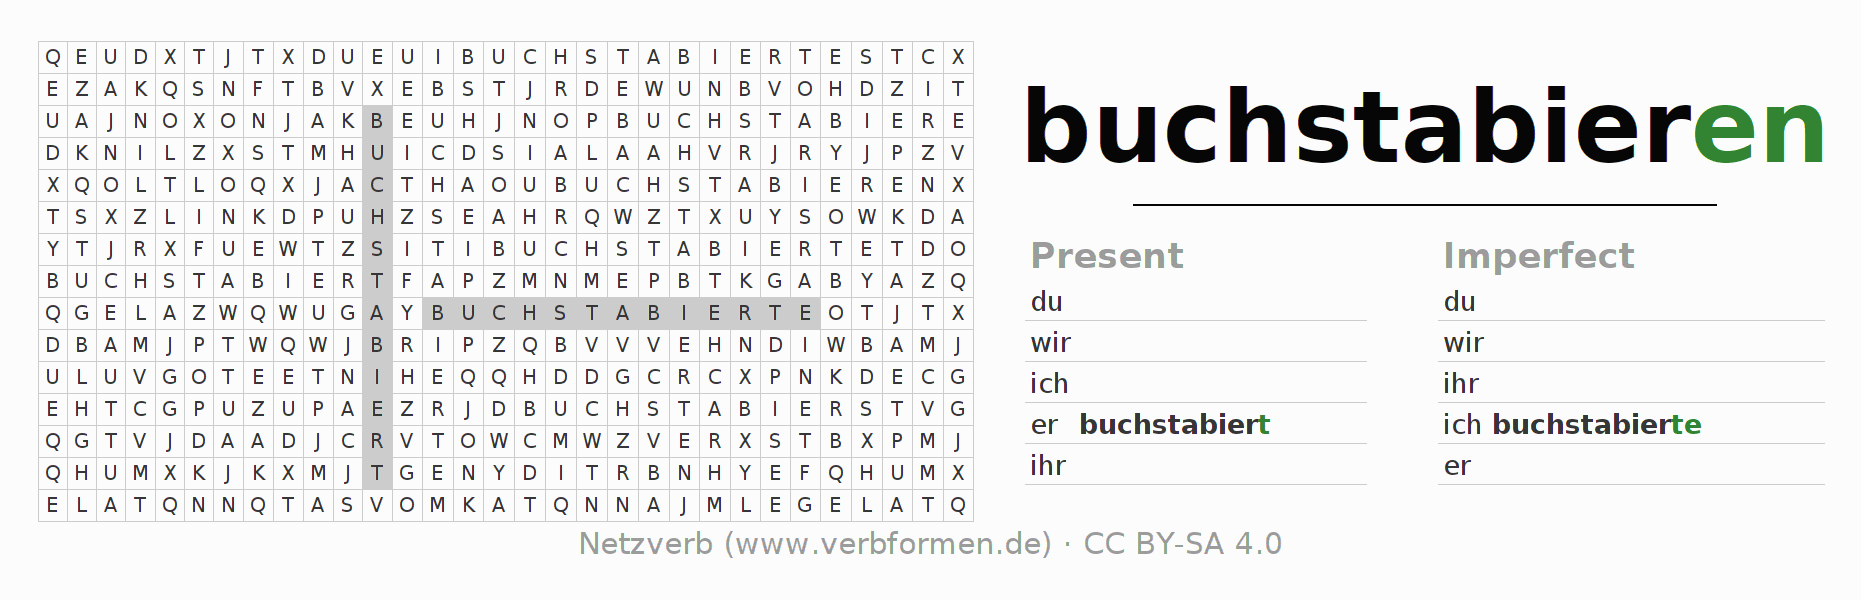 Word search puzzle for the conjugation of the verb buchstabieren